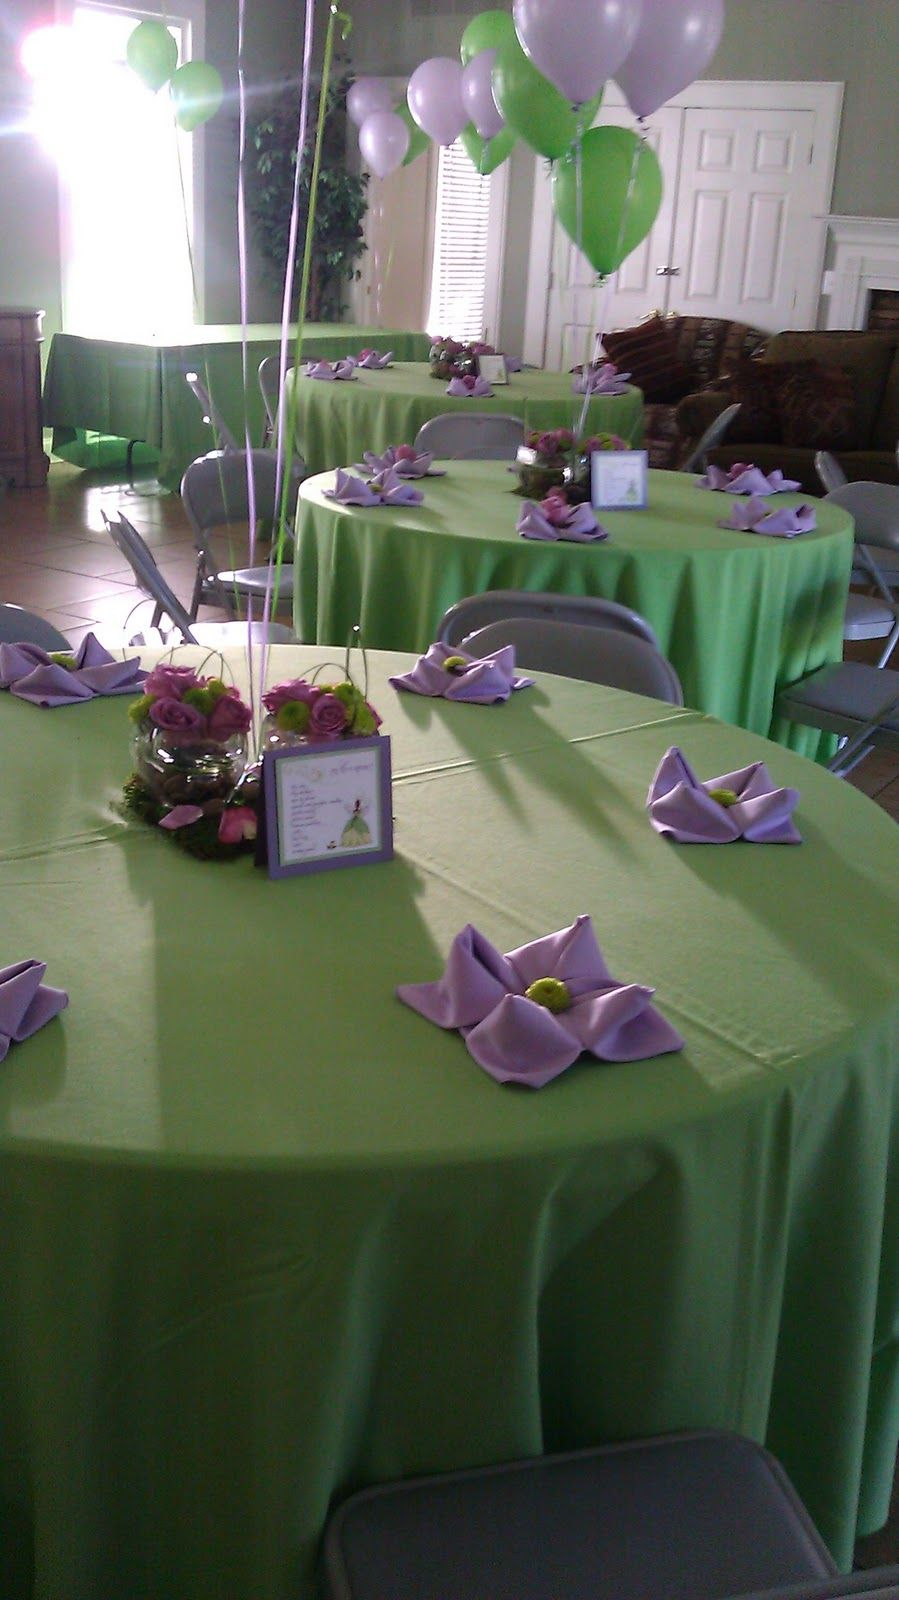 I Received A Request To Design Baby Shower With The Theme Of Princess Frog Since This Was Nursery And Purple T